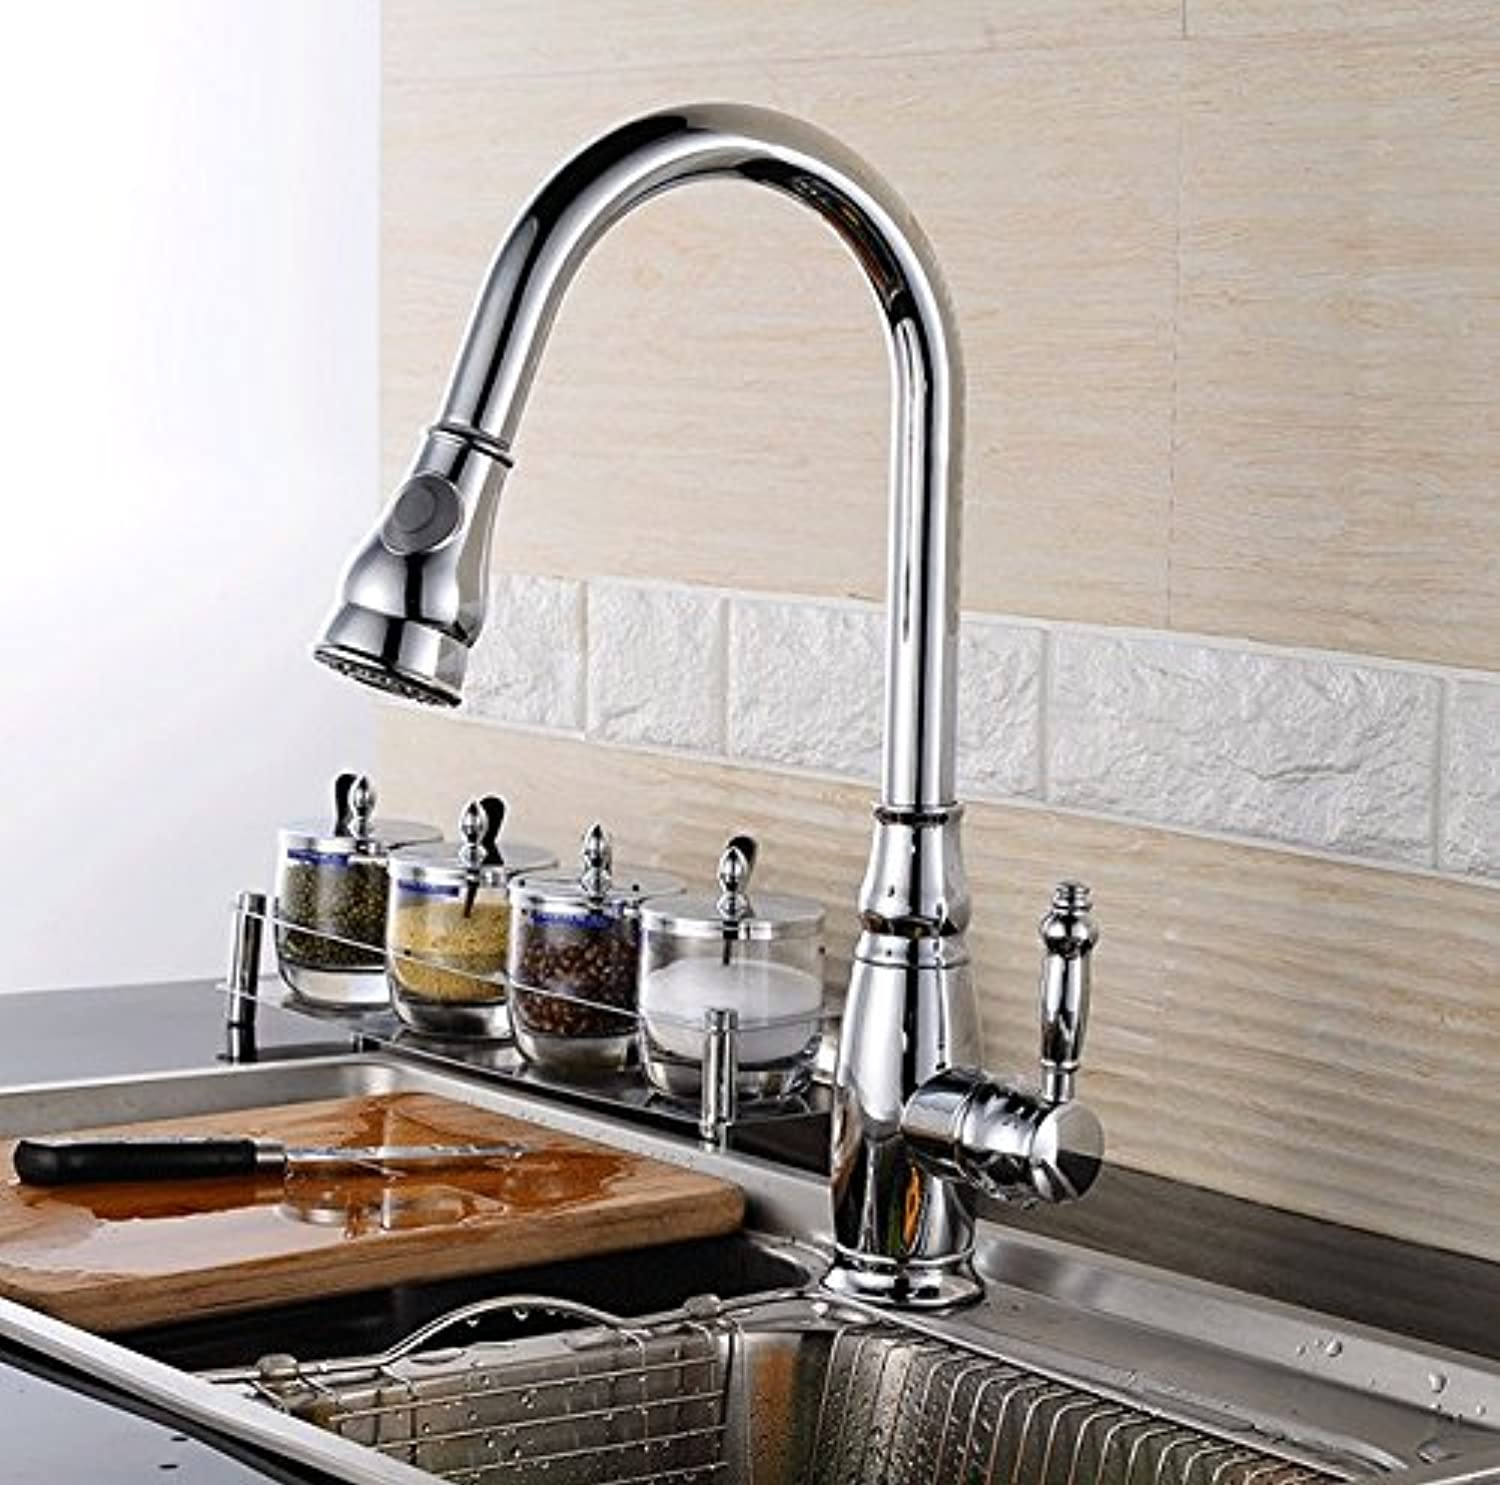 Mangeoo Faucet The Kitchen Draws The Faucet, The Copper Hot And Cold Water Tank, The Faucet, The Wash Basin, The Washing Basin Water Faucet.